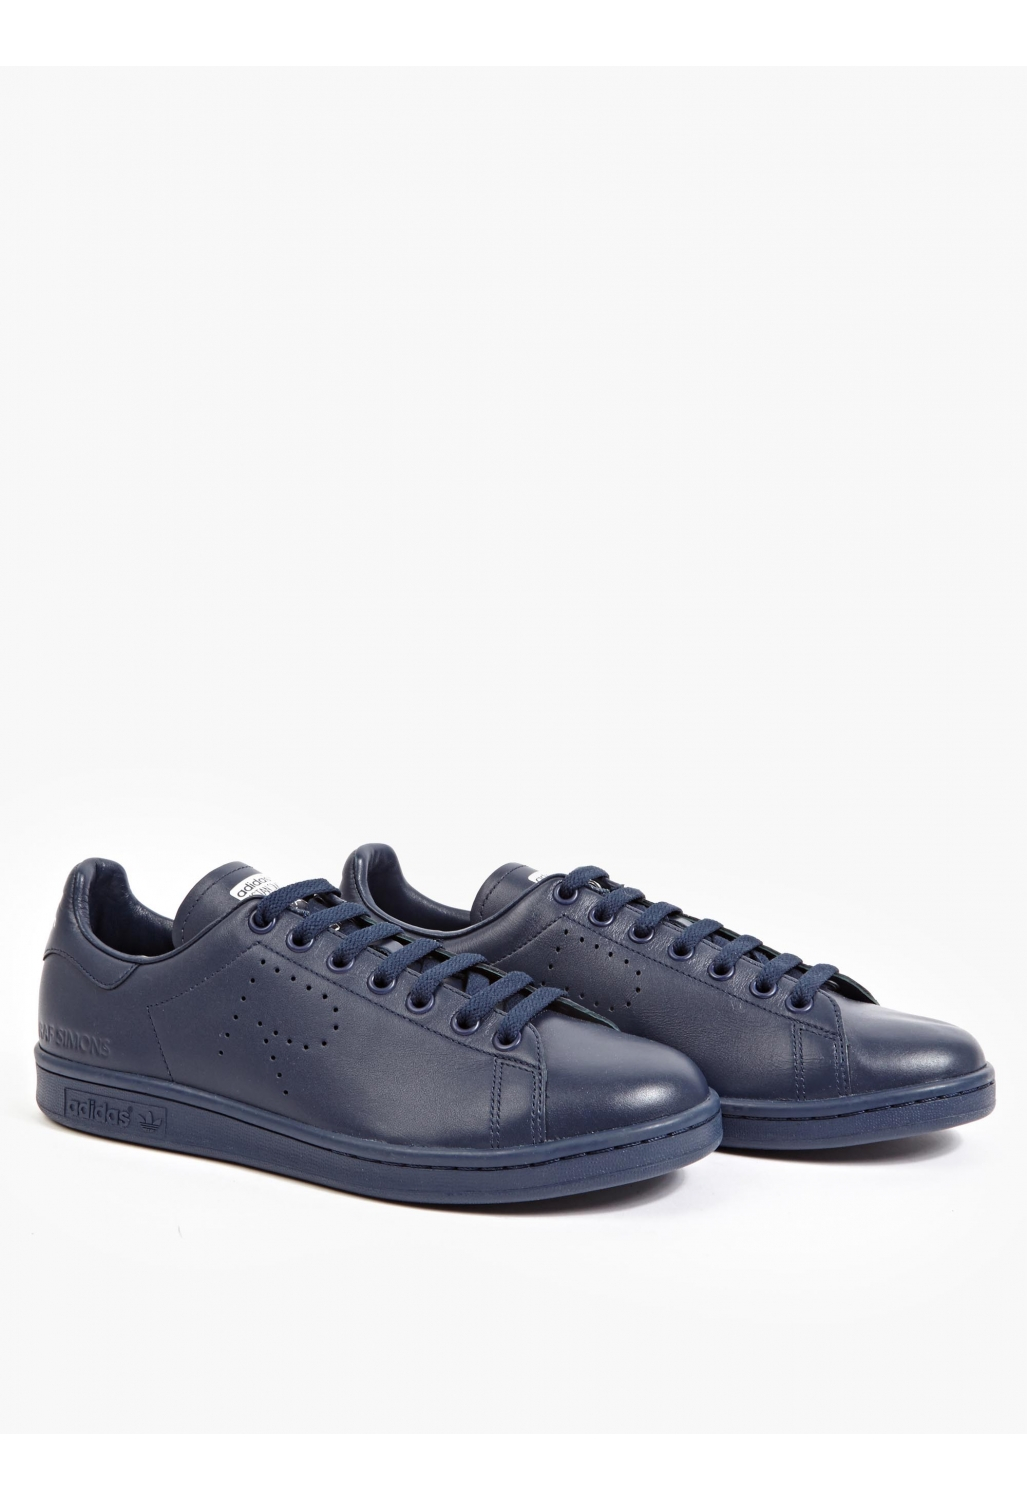 adidas by raf simons navy stan smith sneakers in blue for. Black Bedroom Furniture Sets. Home Design Ideas